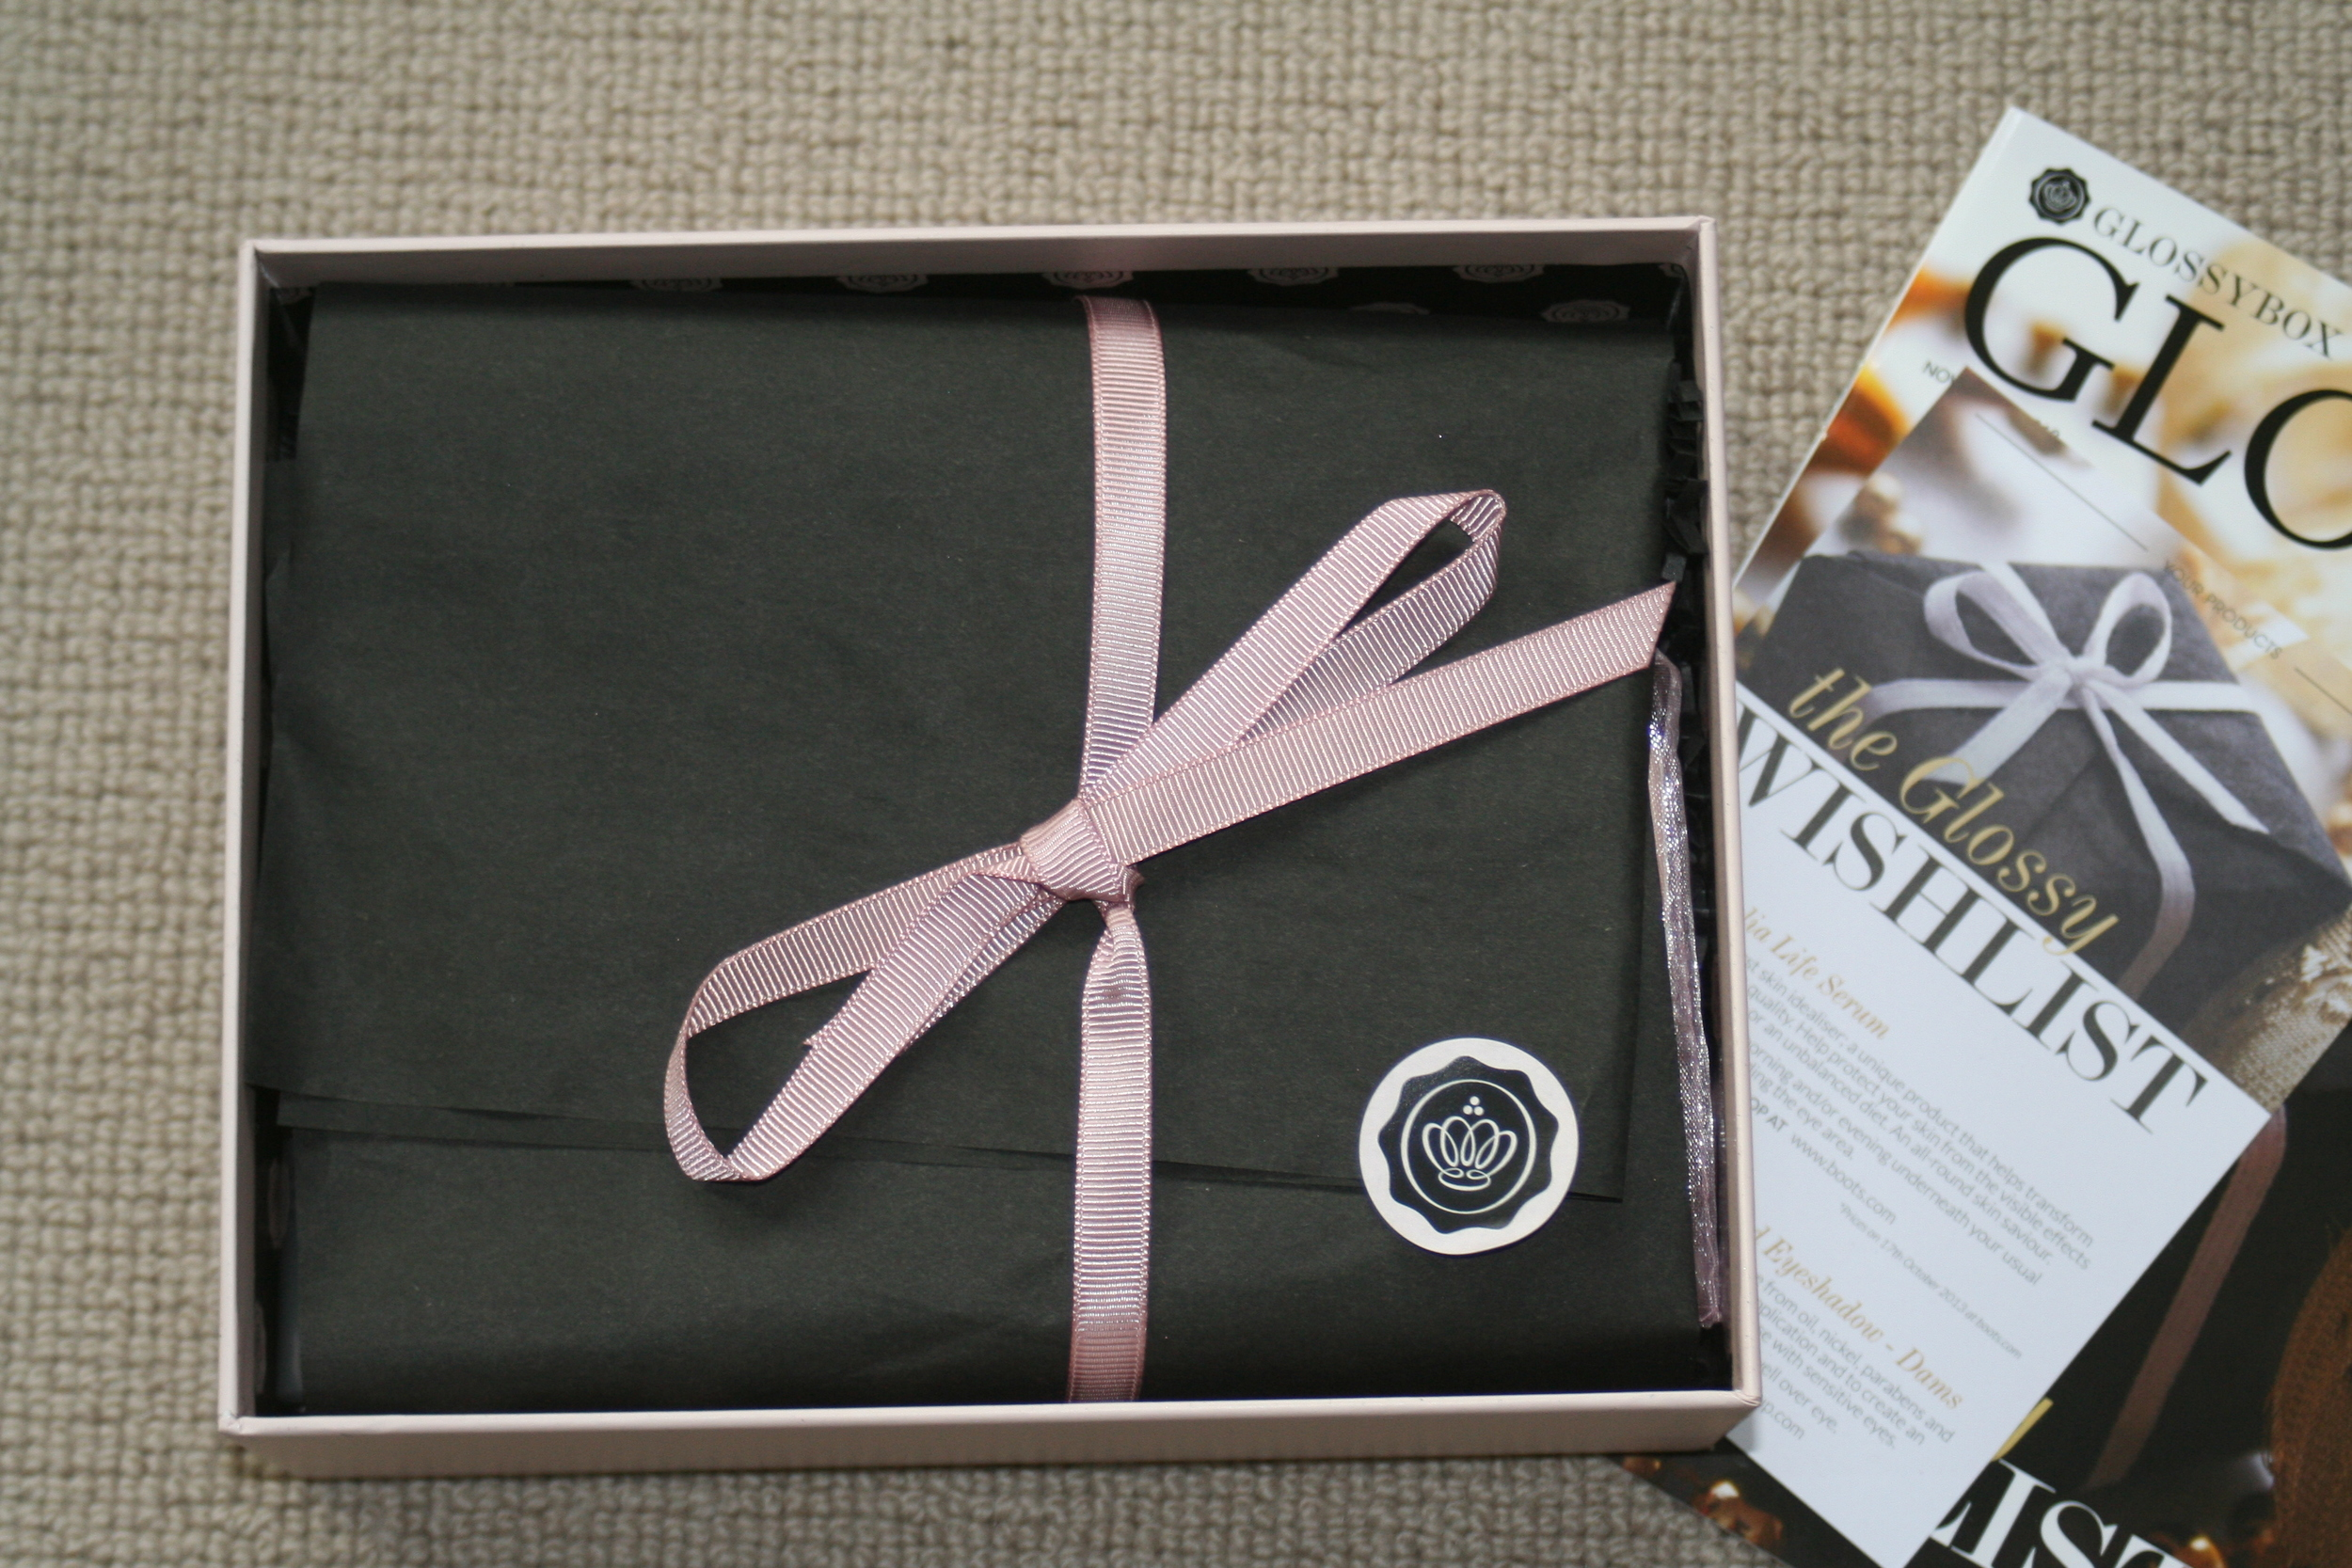 Glossybox ... always amazing presentation